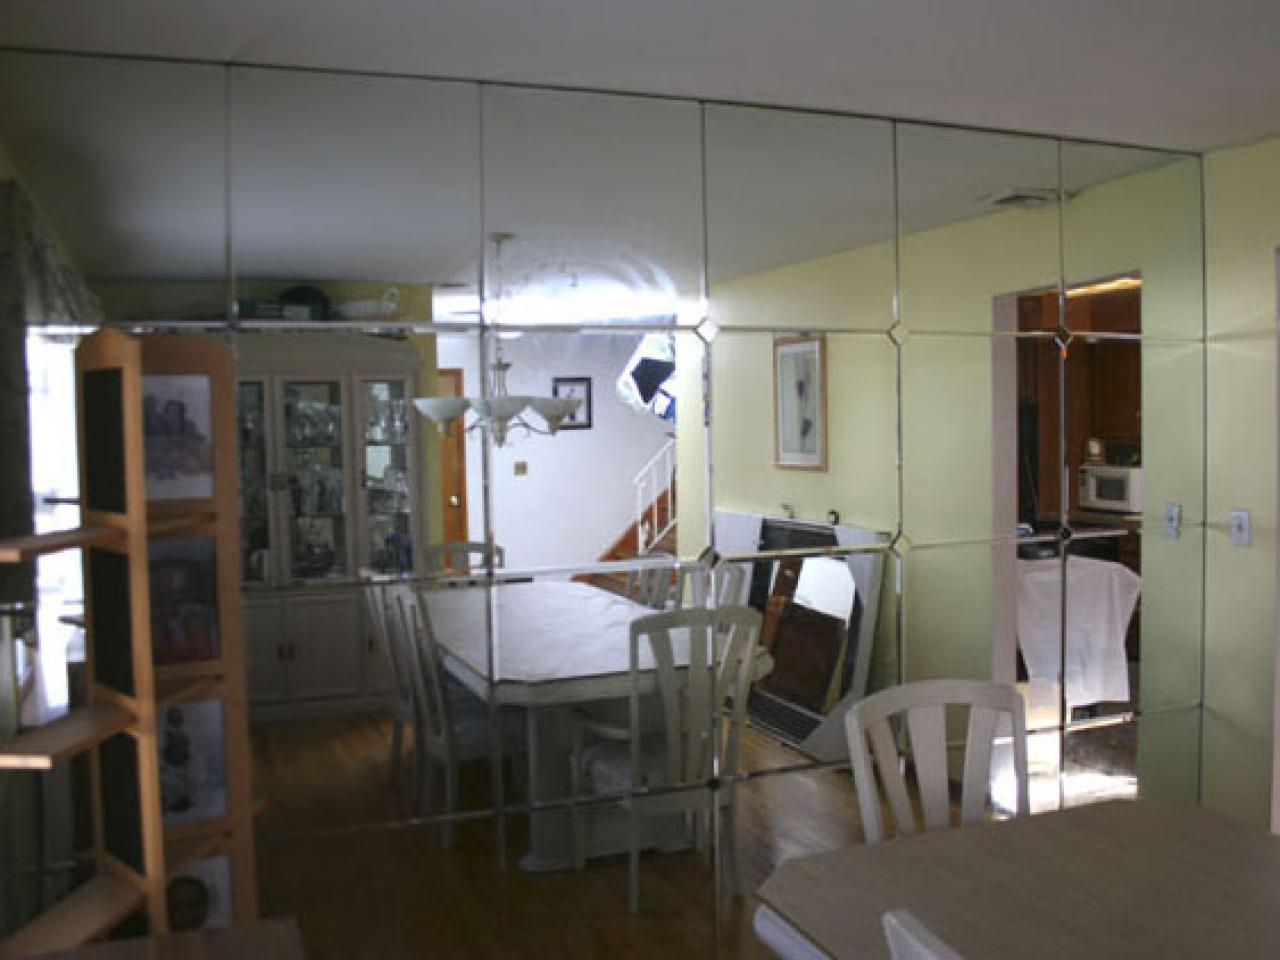 Decoration Large Mirror Bedrooms Decorate For Wall Big In Wallingford Large Frameless Wall Mirrors (View 20 of 20)